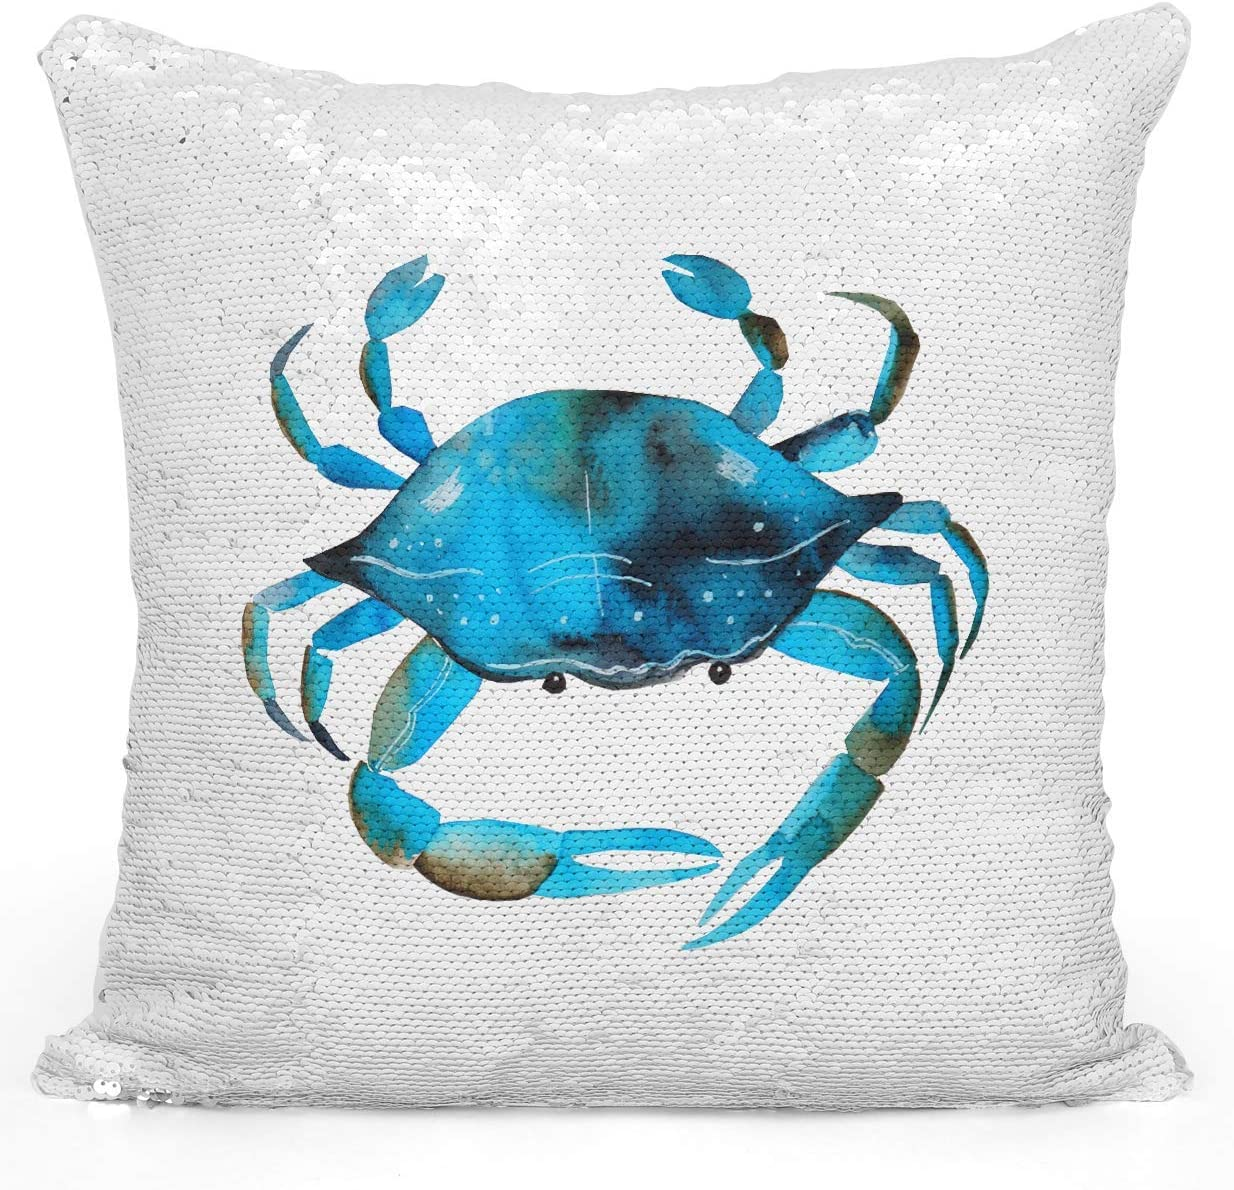 Amazon Com Looms Linens Sequin Mermaid Throw Pillow Watercolor Blue Crab Sea Marine Life Pillow 16x16 Inch Magic Flip Throw Pillow With Stuffing 1 Piece Home Kitchen